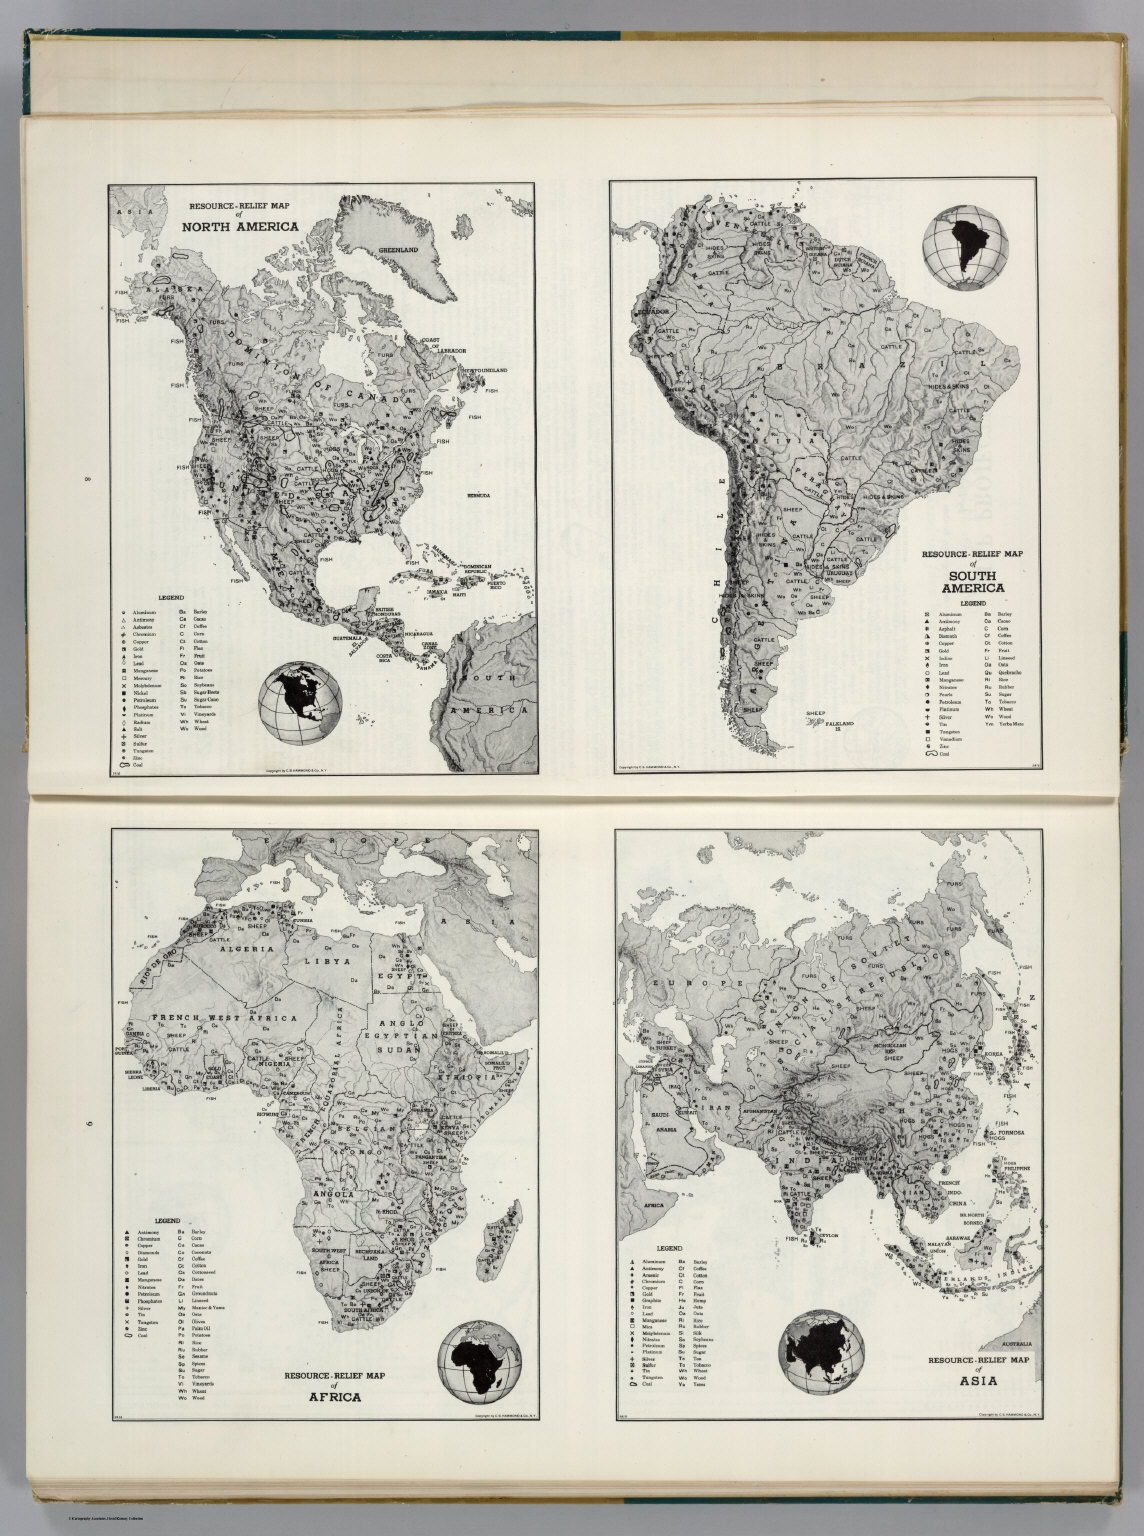 resource relief maps of north america south america africaand asia